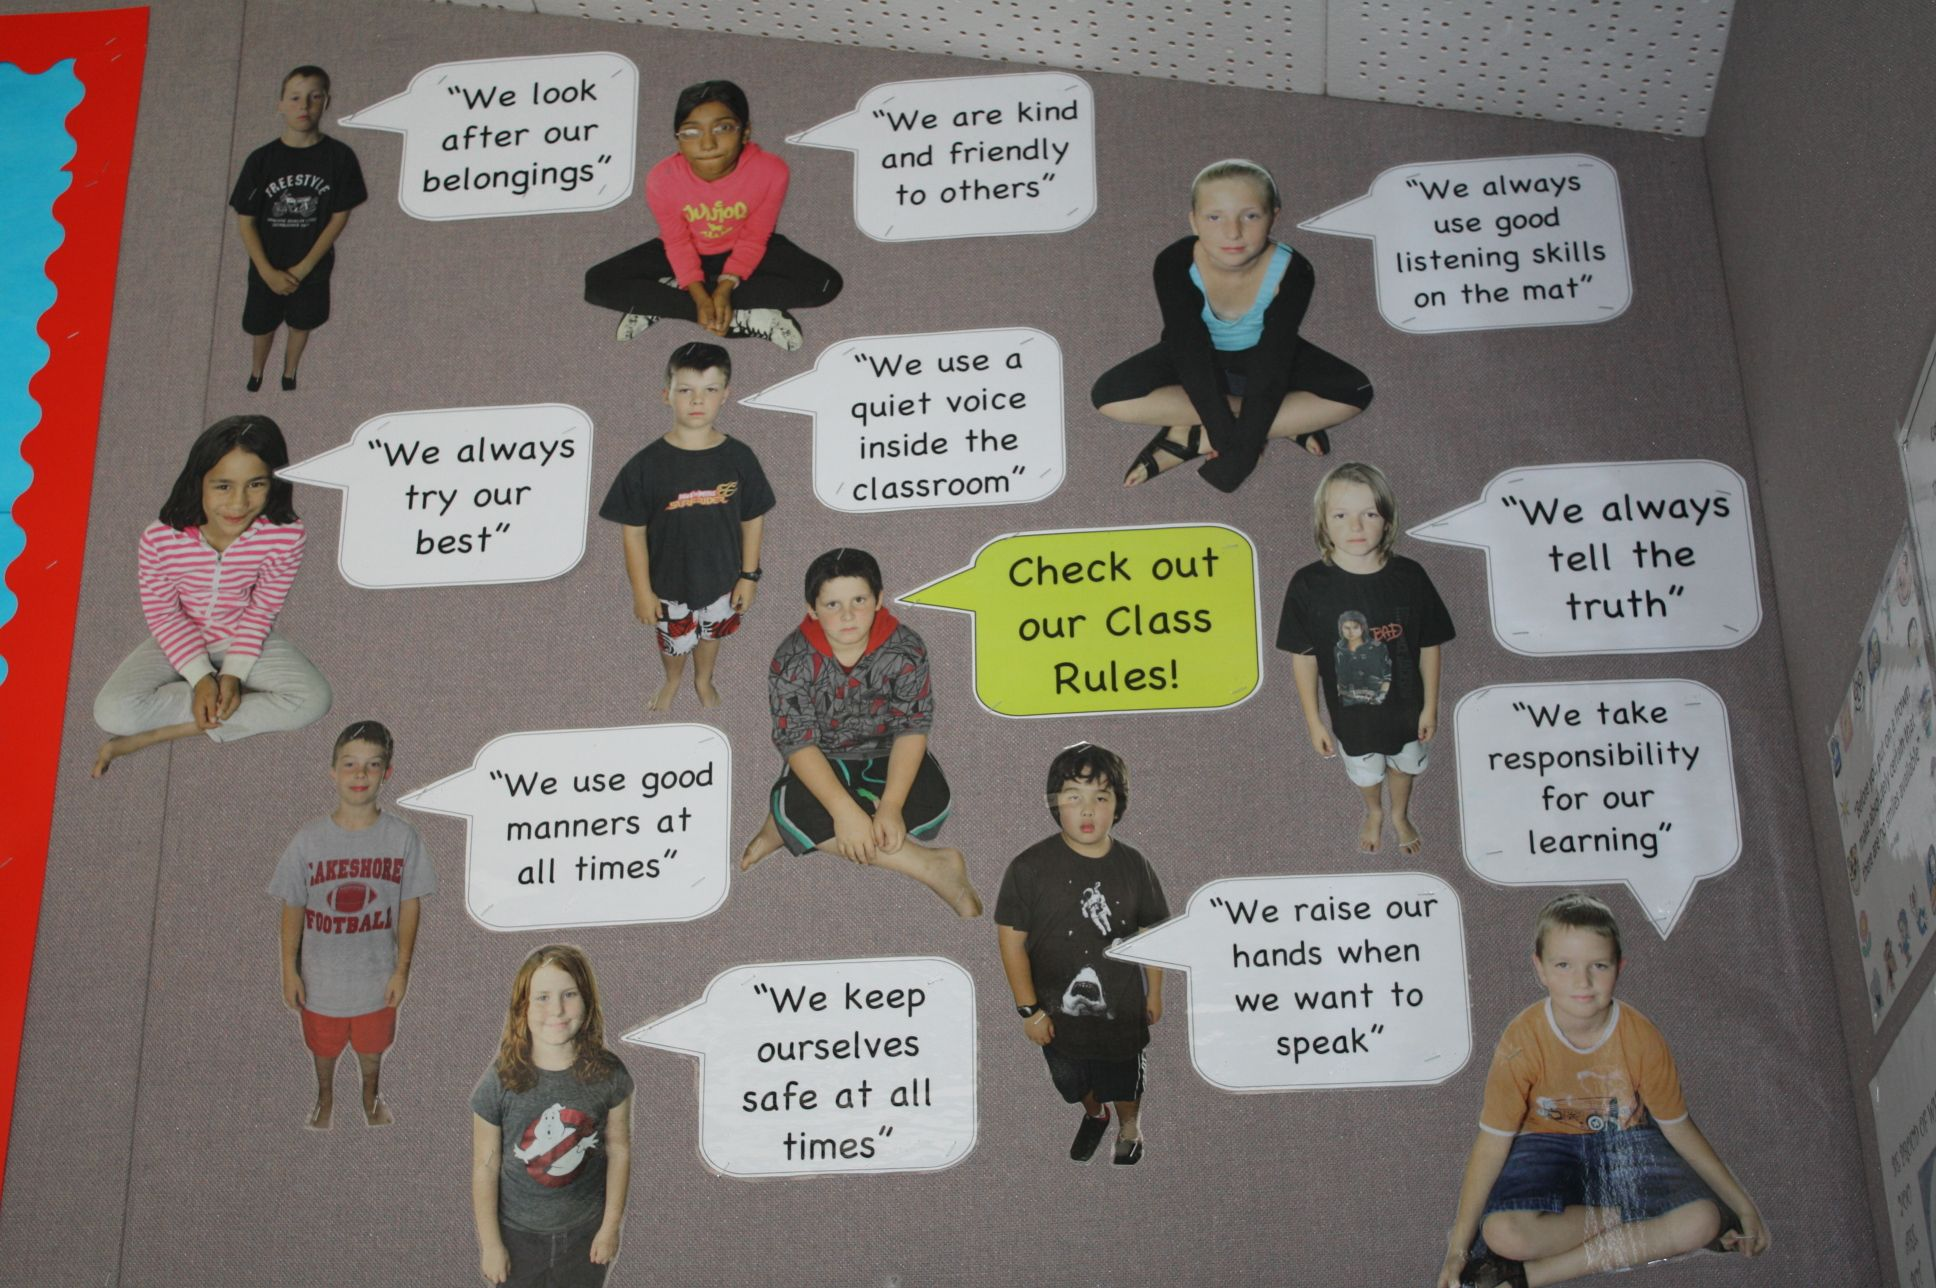 Great way to display class rules, reminders, etc. Use student photos with speech bubbles.